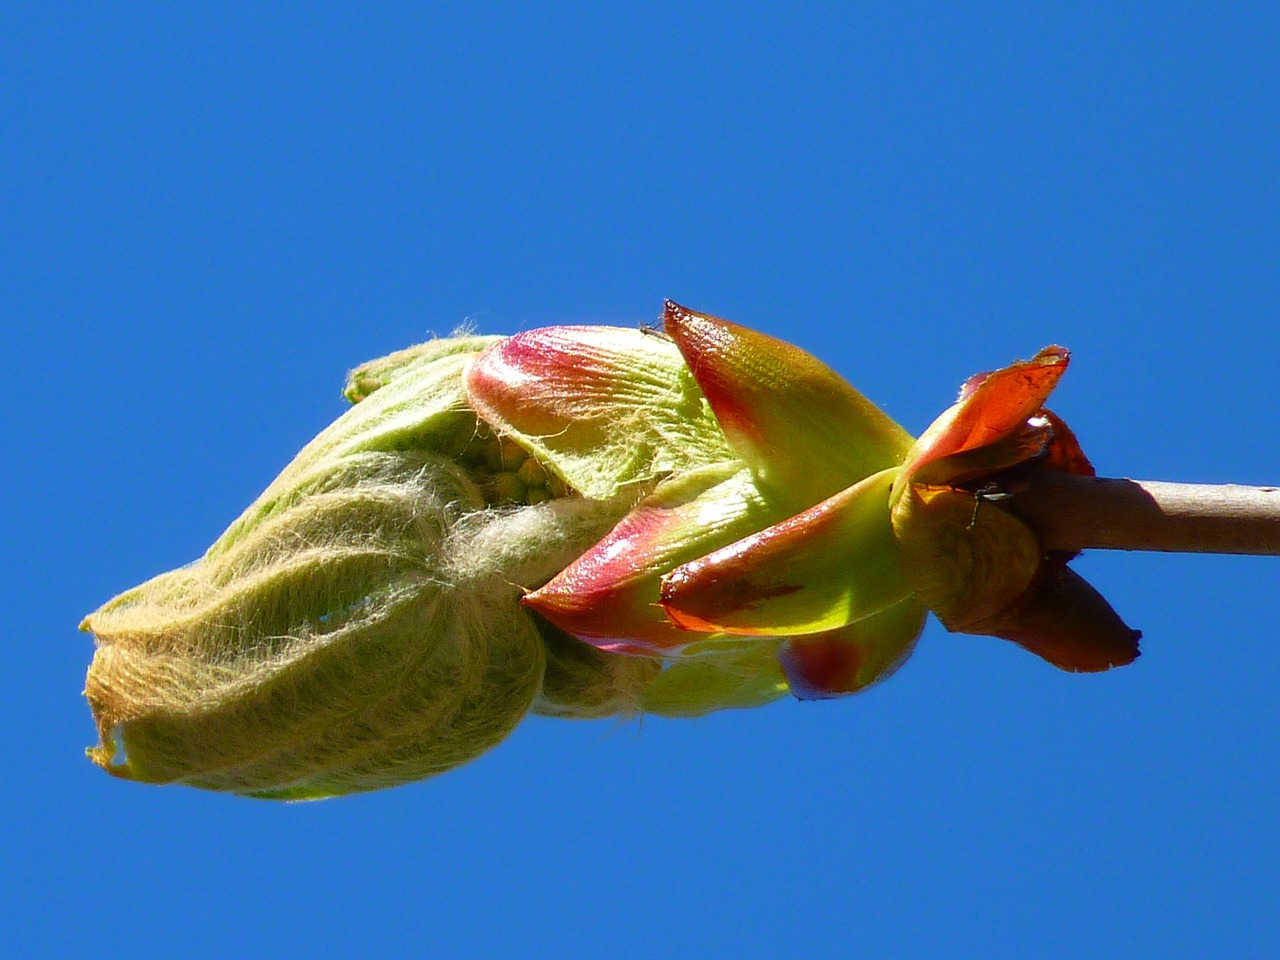 bud chestnut chestnut bud free photo